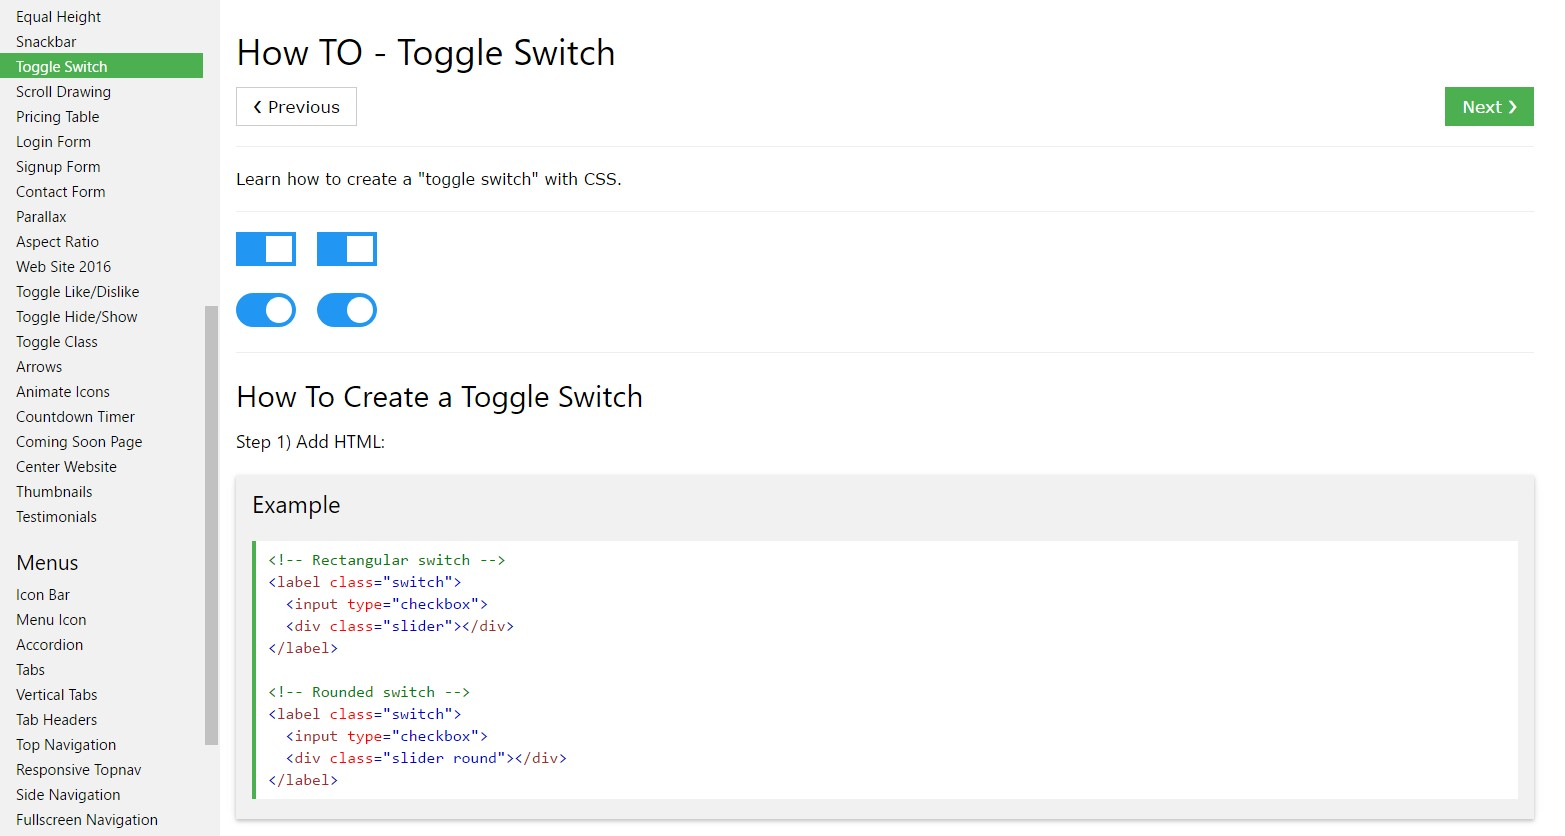 The best way to  establish Toggle Switch